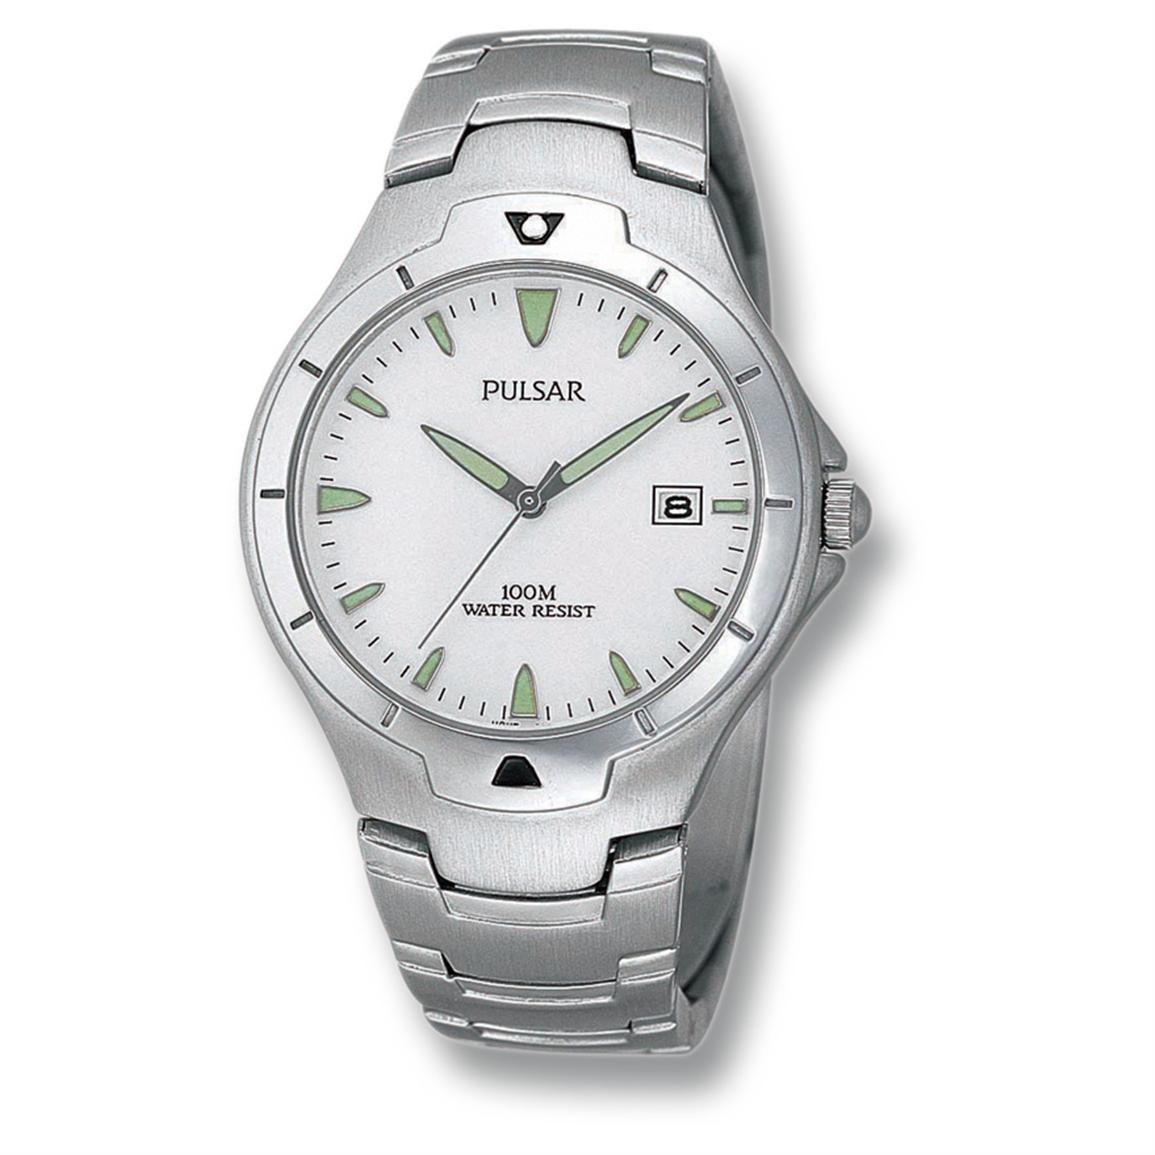 Men's Pulsar® Sport Watch, Silver / White Dial